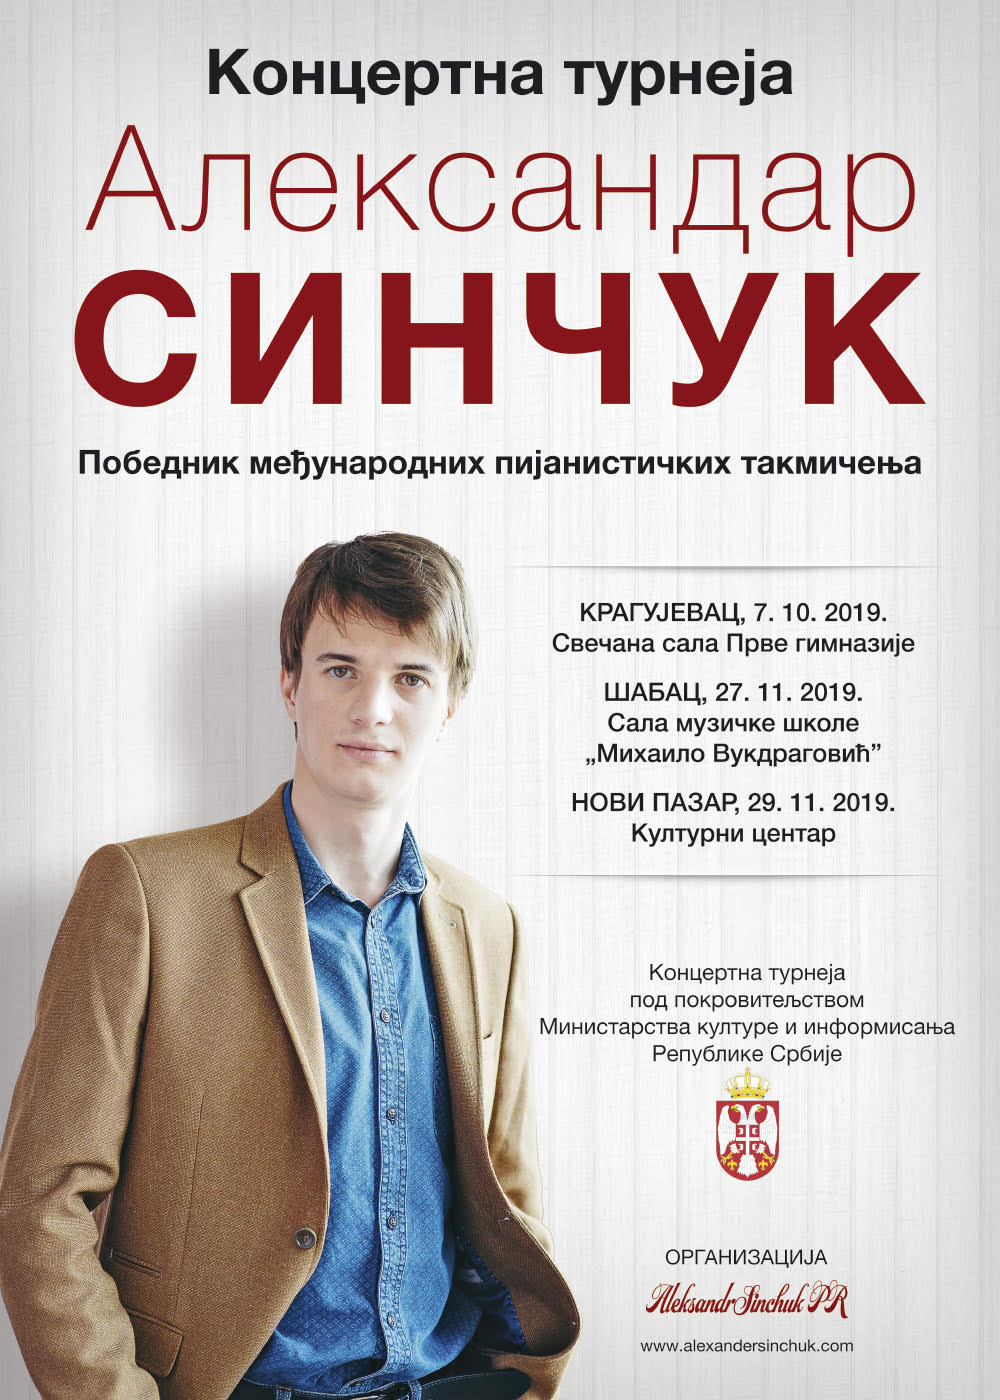 Concert tour under the patronage of the Ministry of Culture and Information of Republic of Serbia